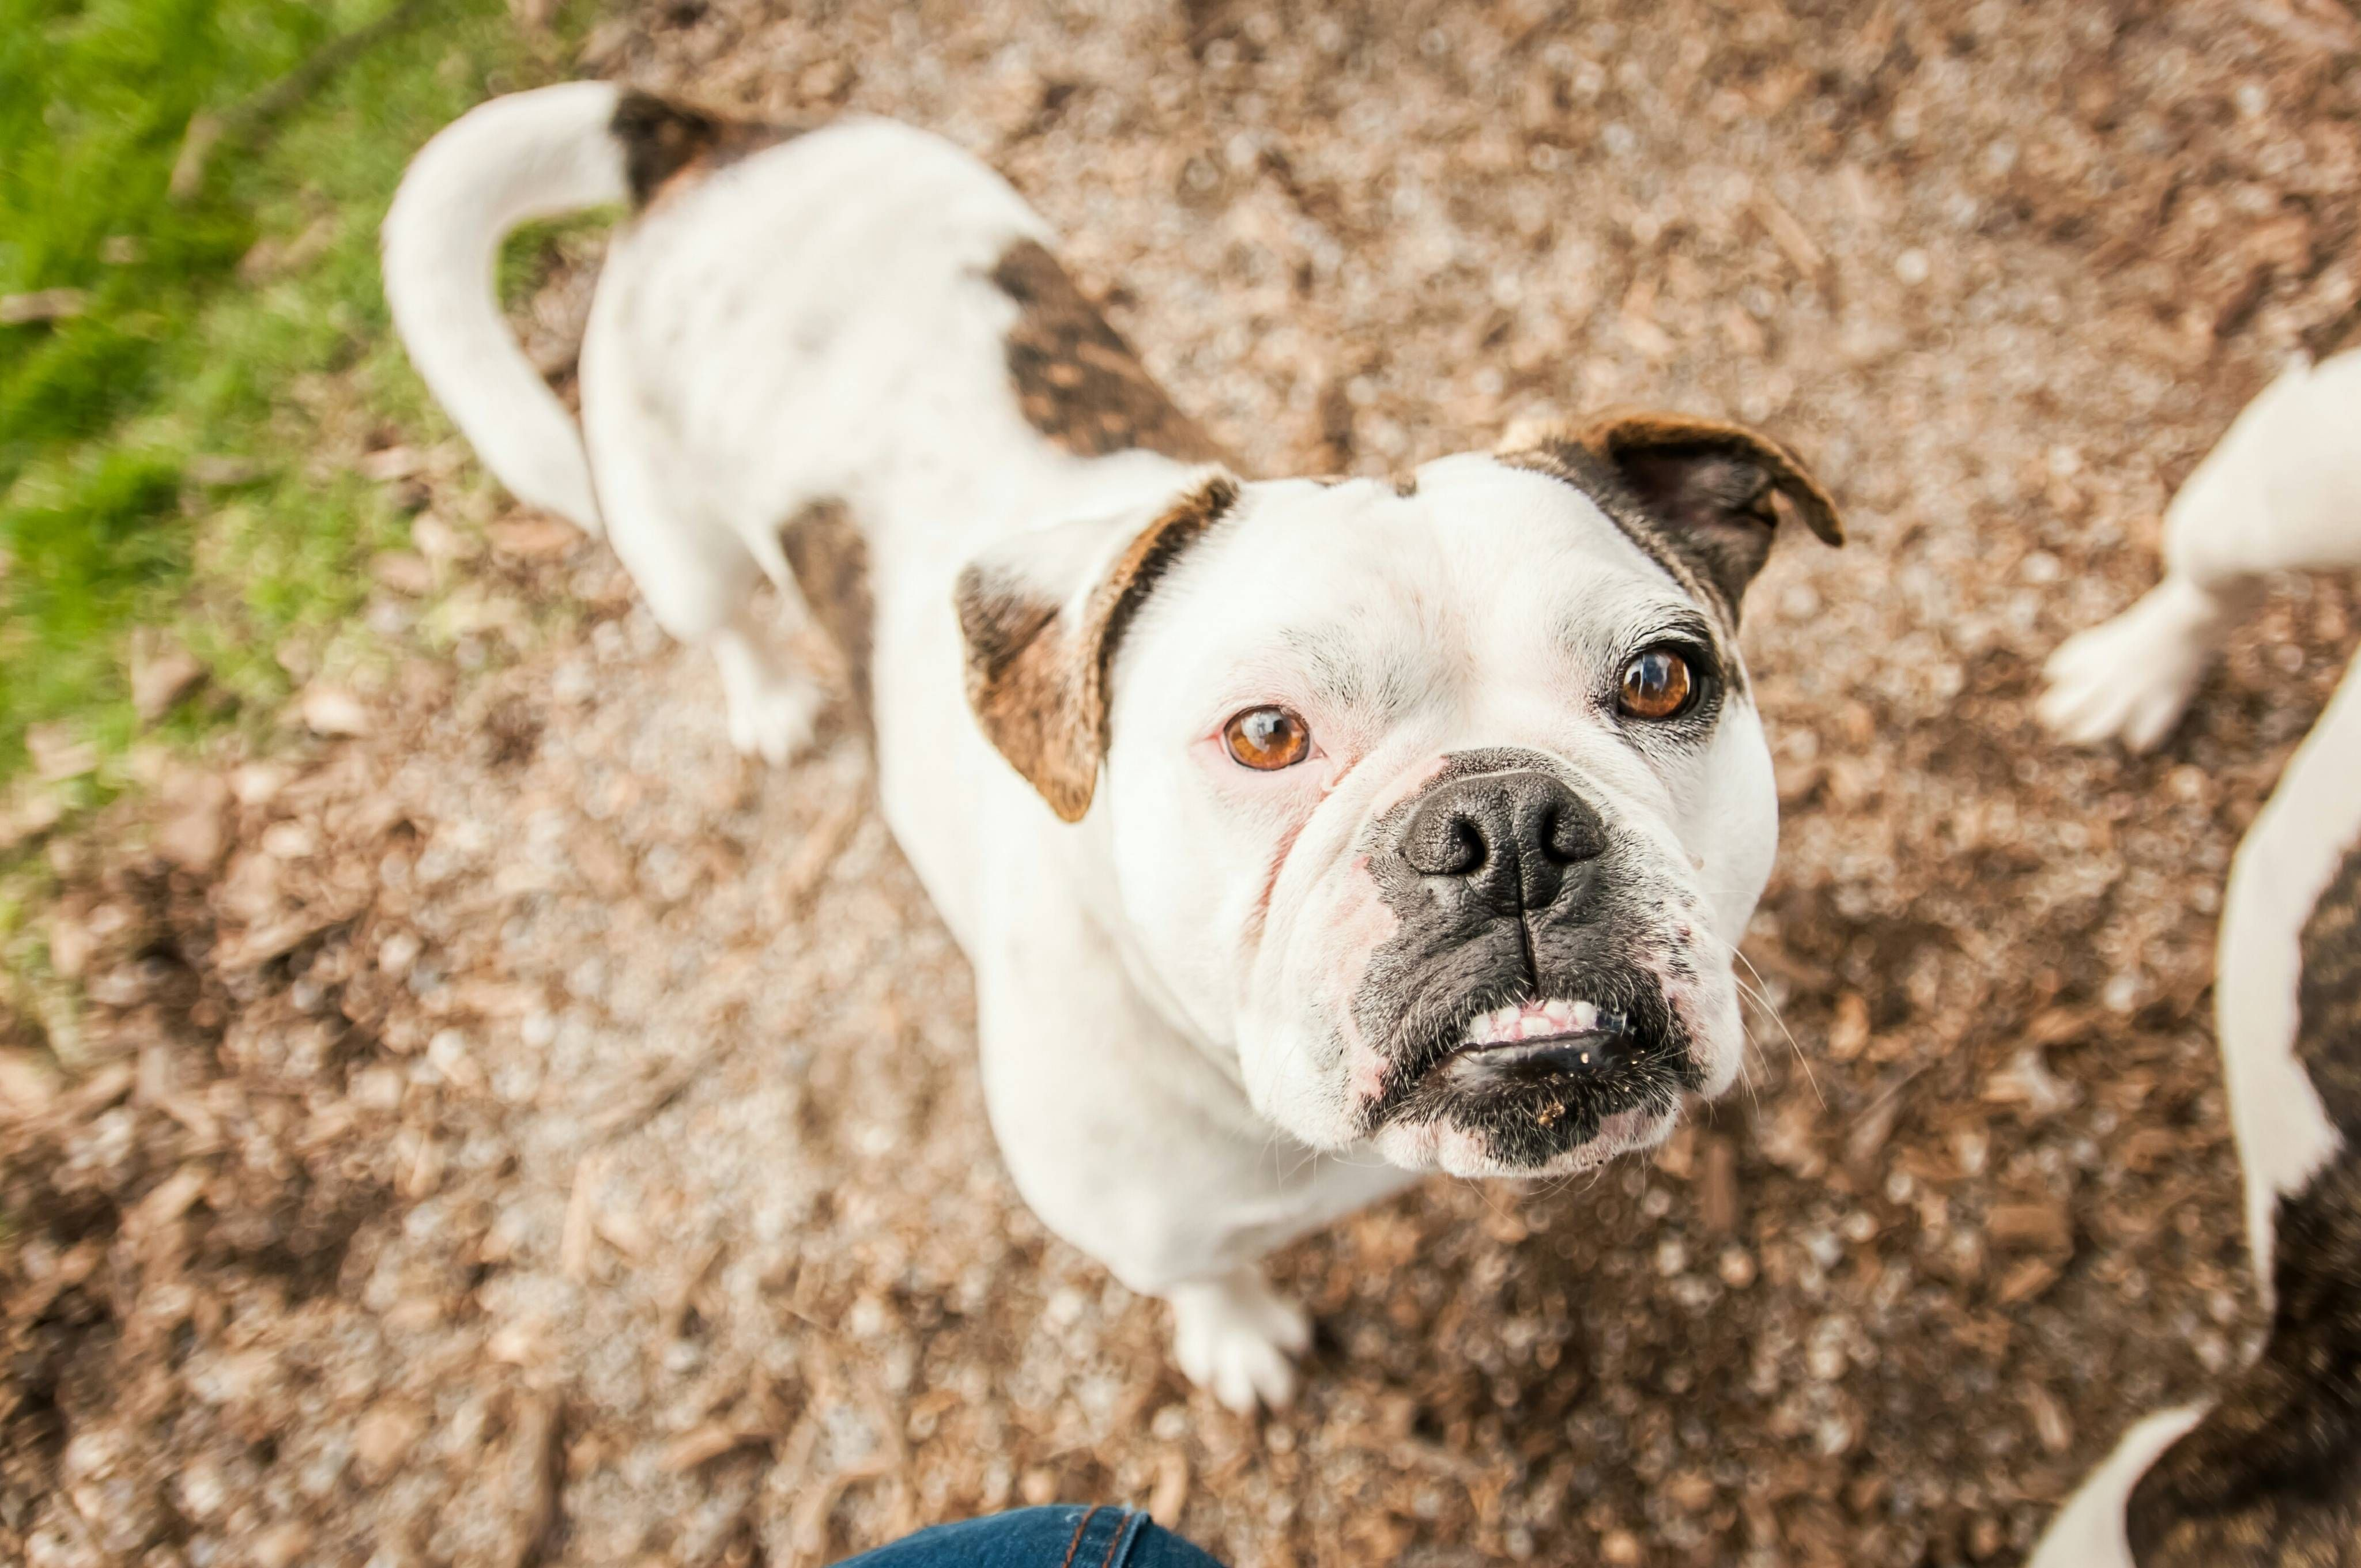 The Pawsome Franky Franky Is 2 5 Year Old Mini Australian Bulldog She Is A Very Kind Dog And Always Shows Her L French Bulldog Puppies Dogs Australian Bulldog